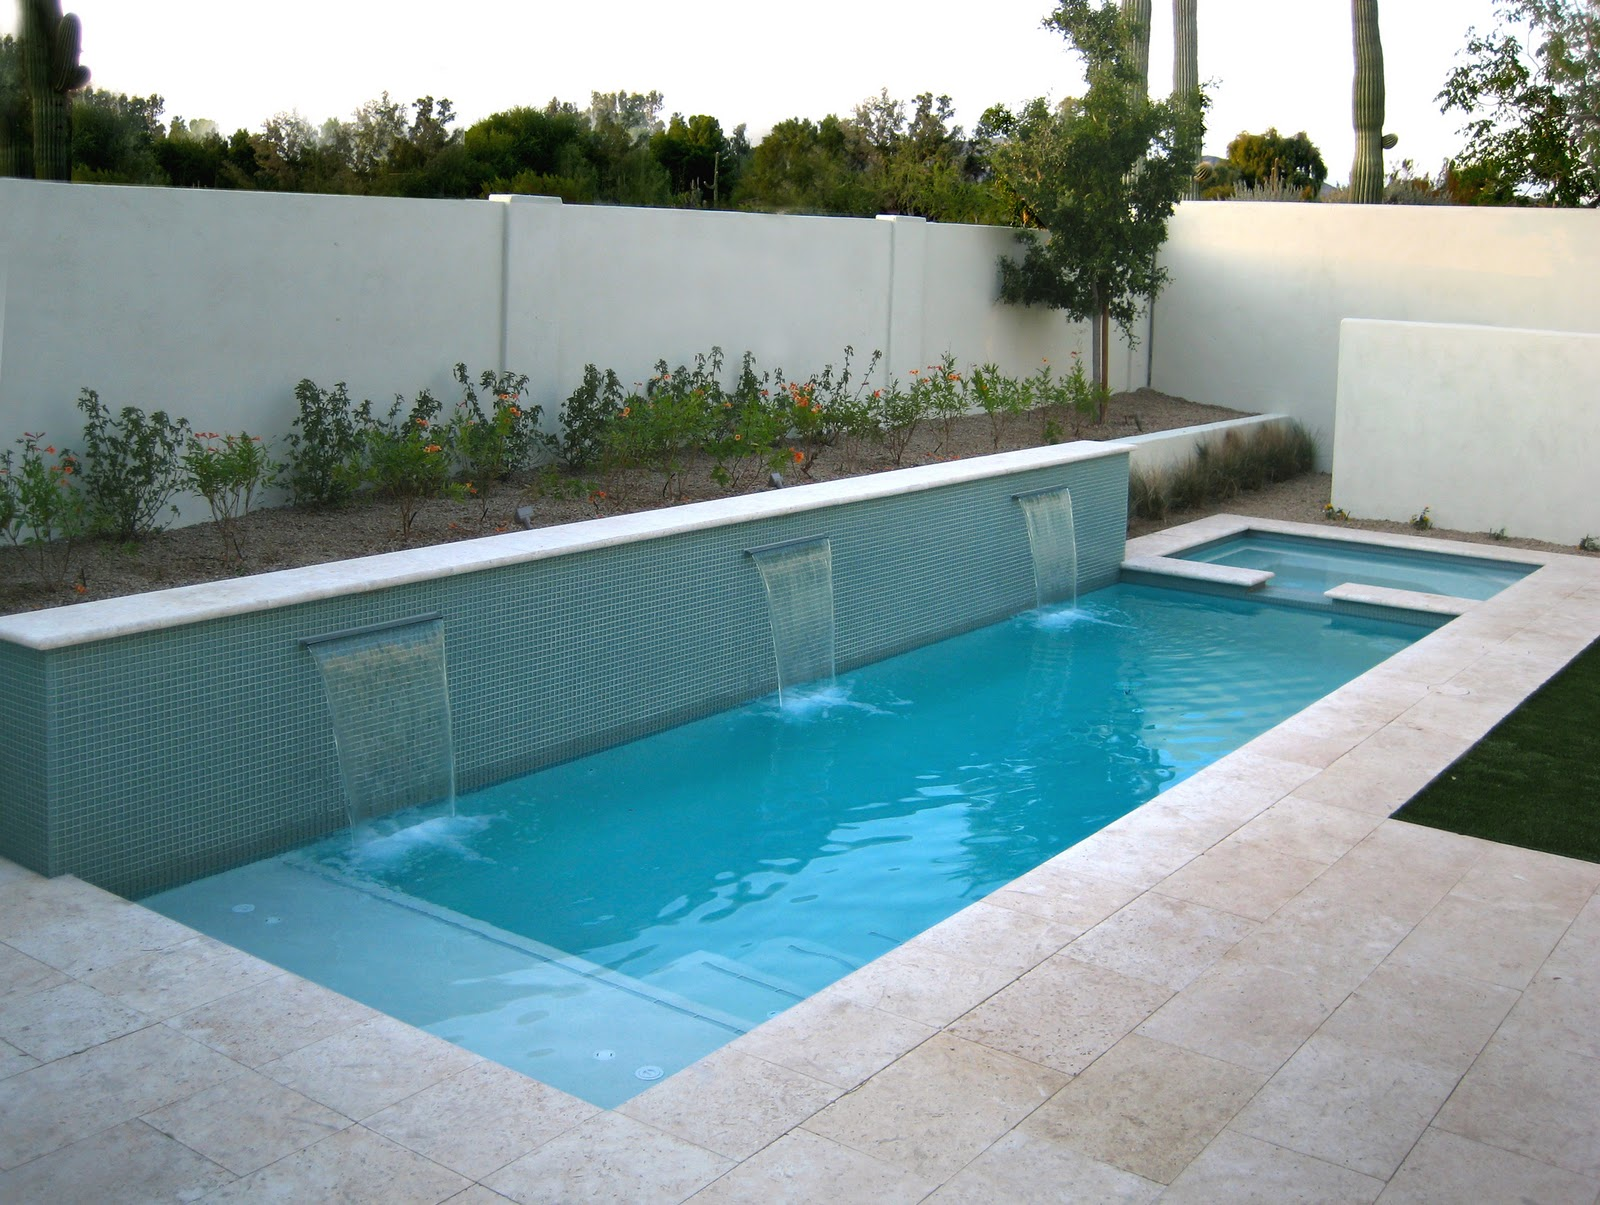 swimming pool designs and plans photo - 7